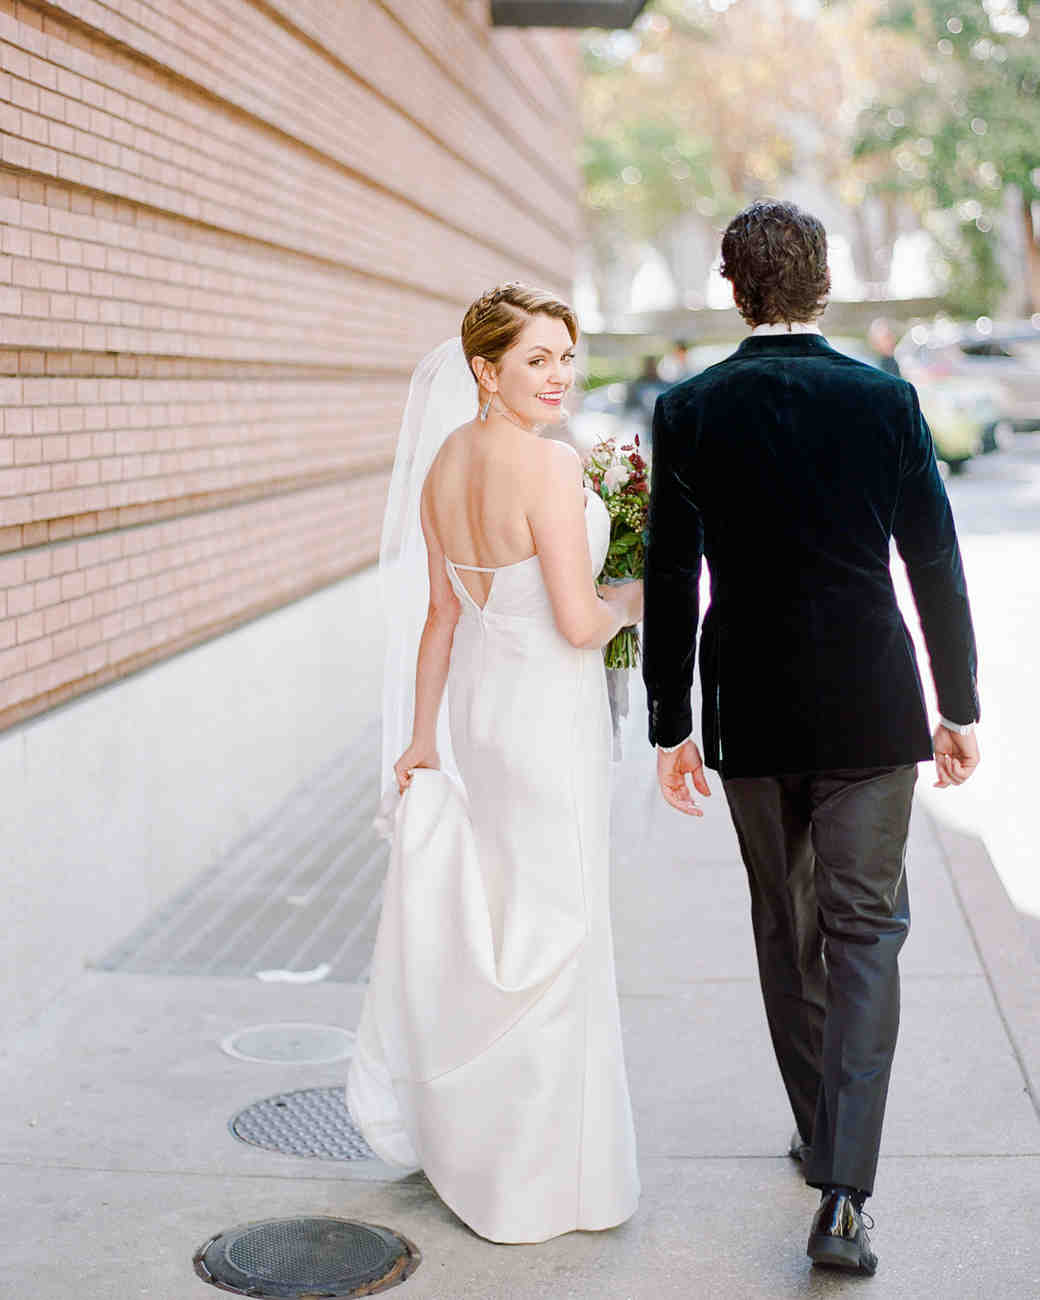 katie andre wedding couple walking bride looking over shoulder